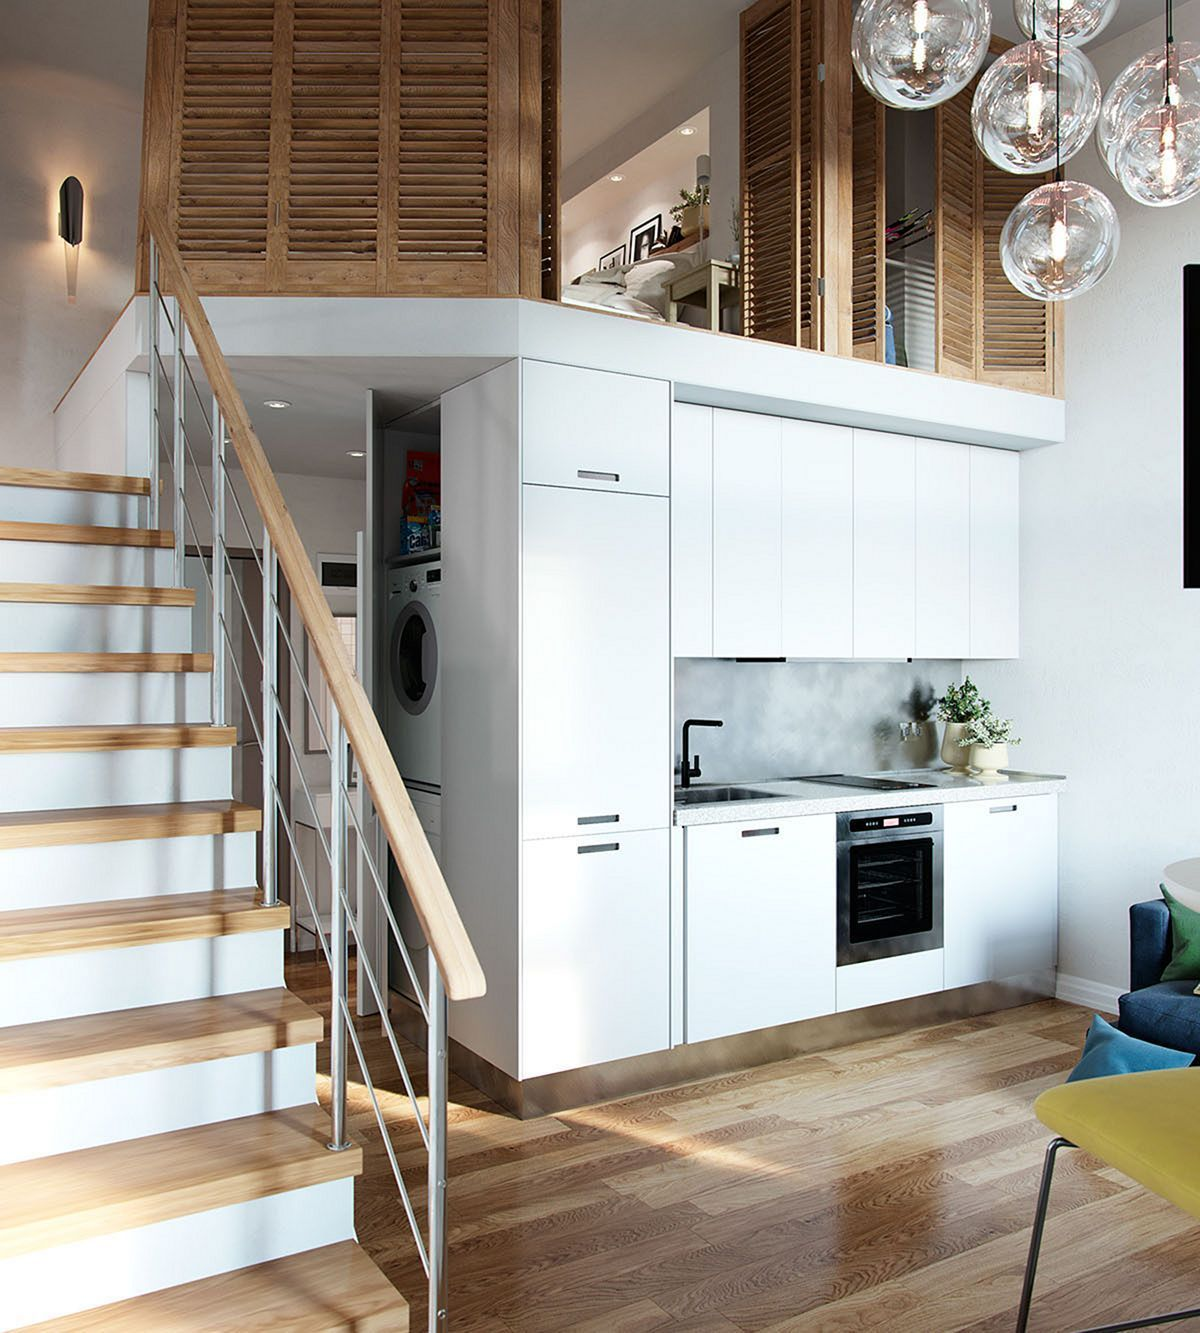 25 Best Stunning Small Home Apartment Decoration Ideas On A